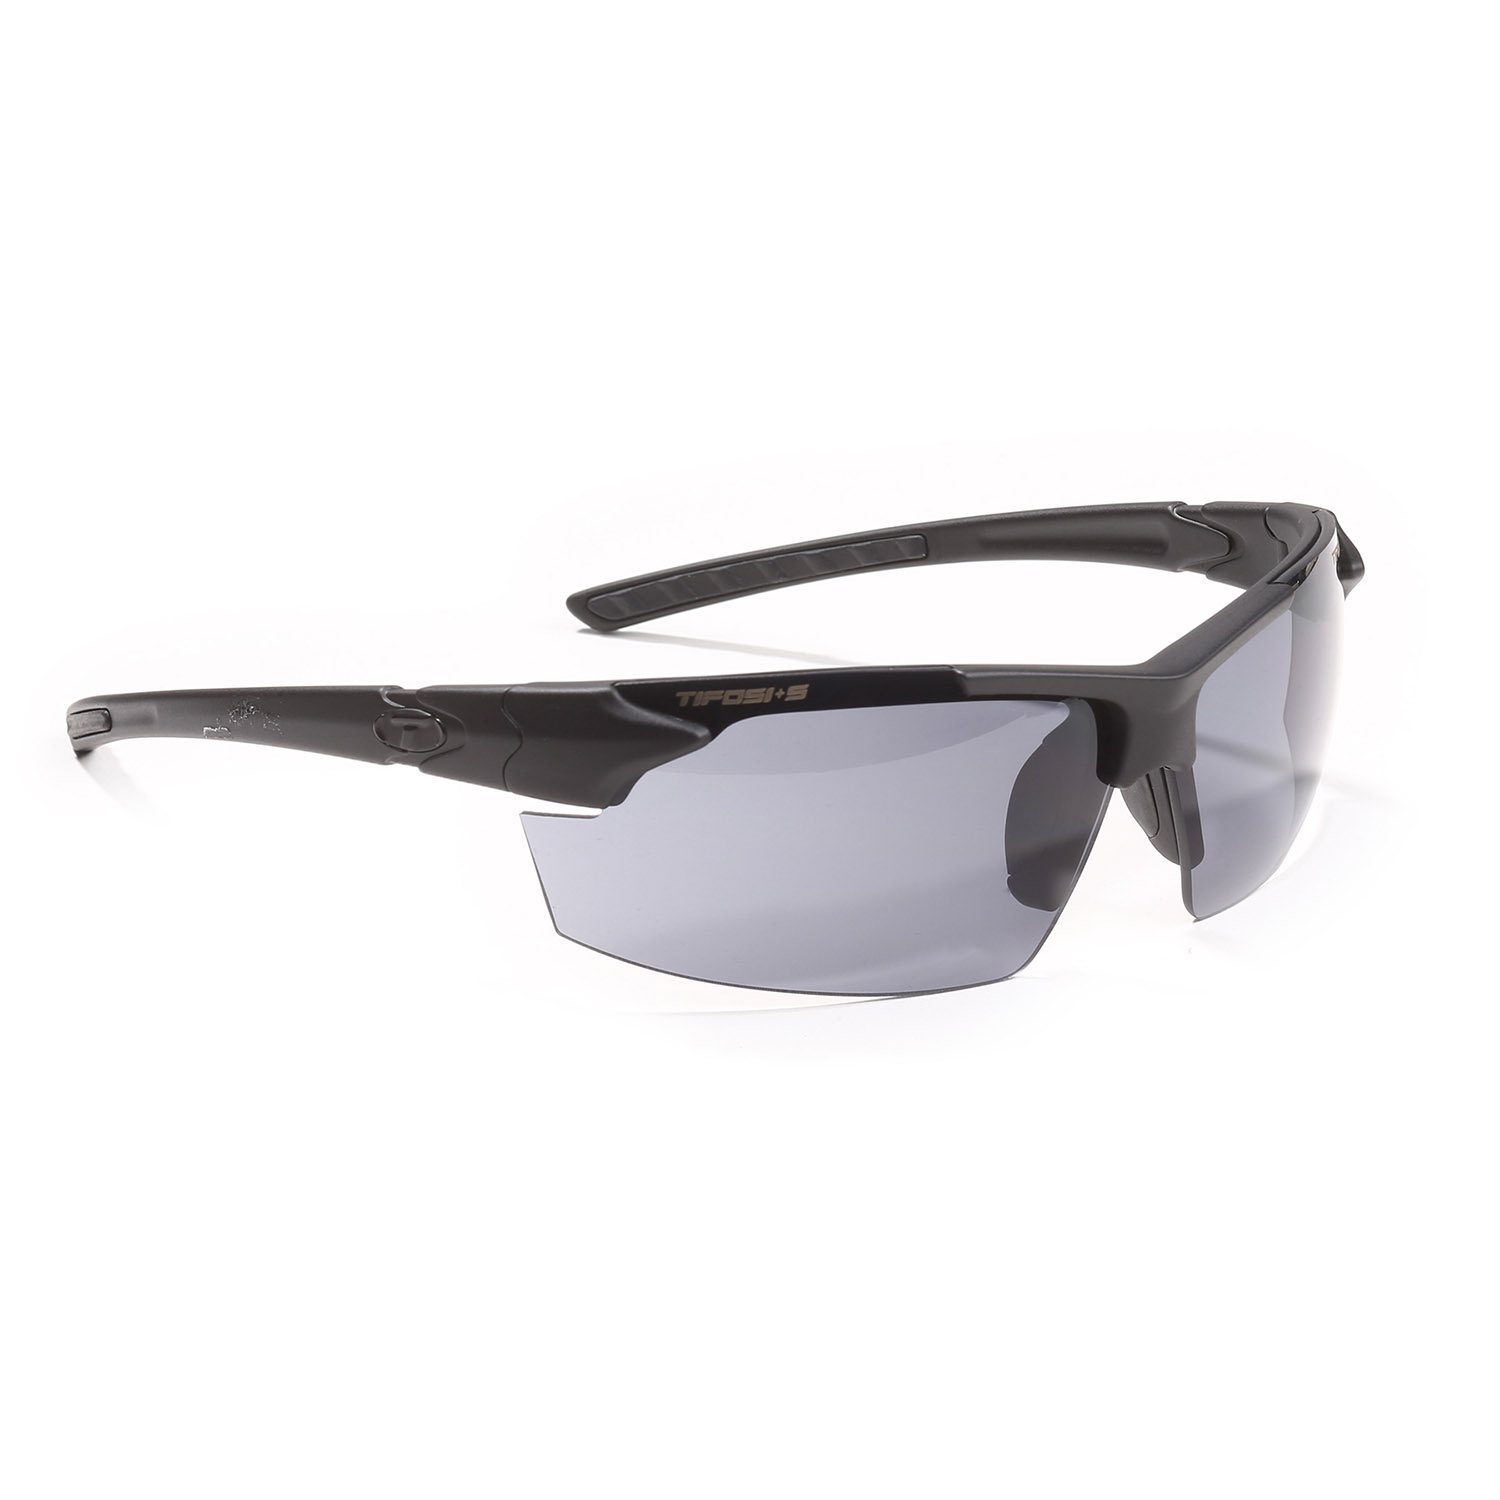 Tifosi Optics Jet FC Tactical Safety Interchangeable Sunglas